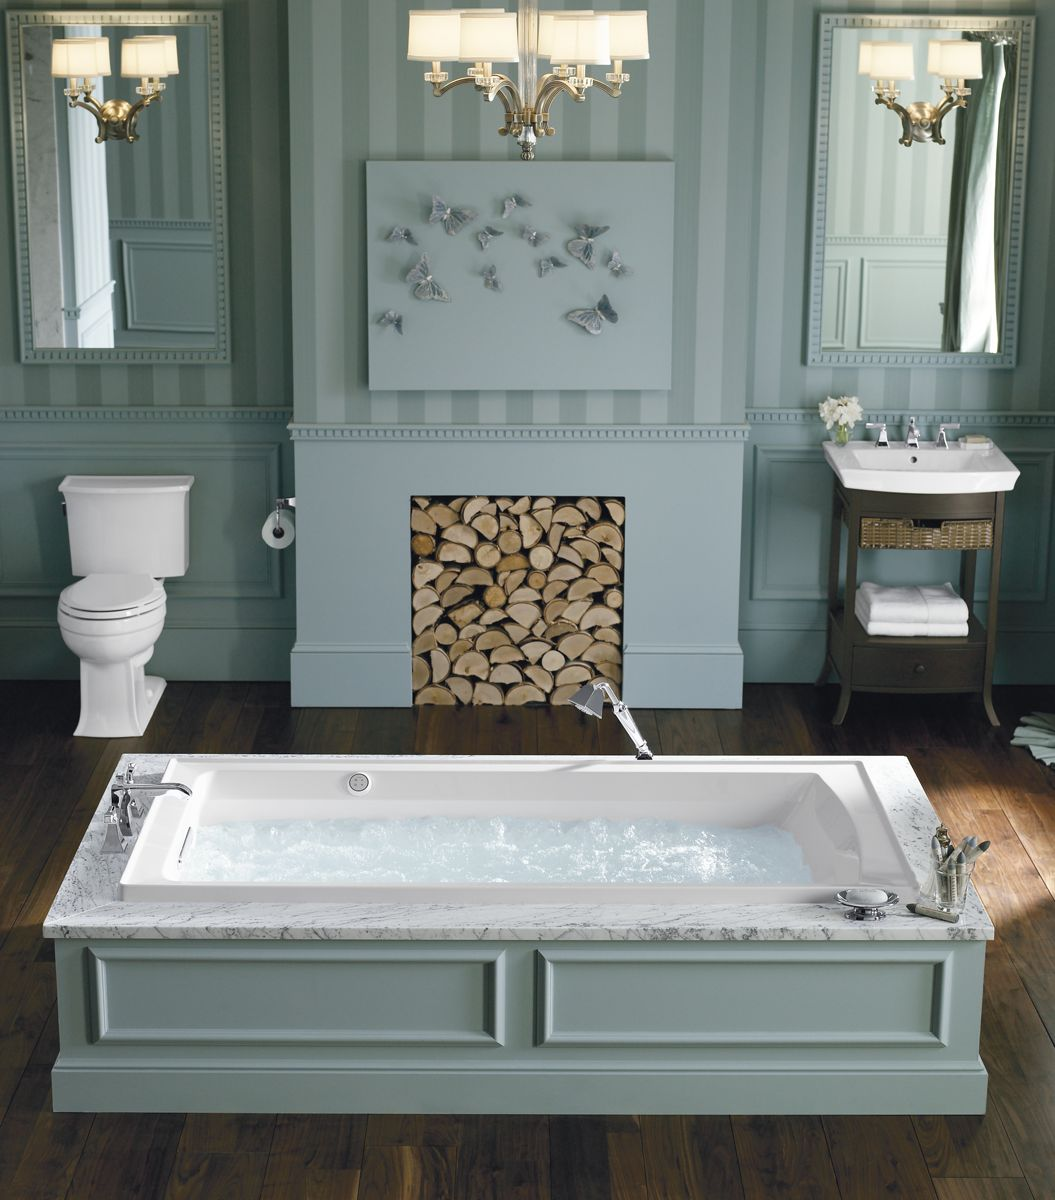 Bathroom Designs Zimbabwe collections | kohler